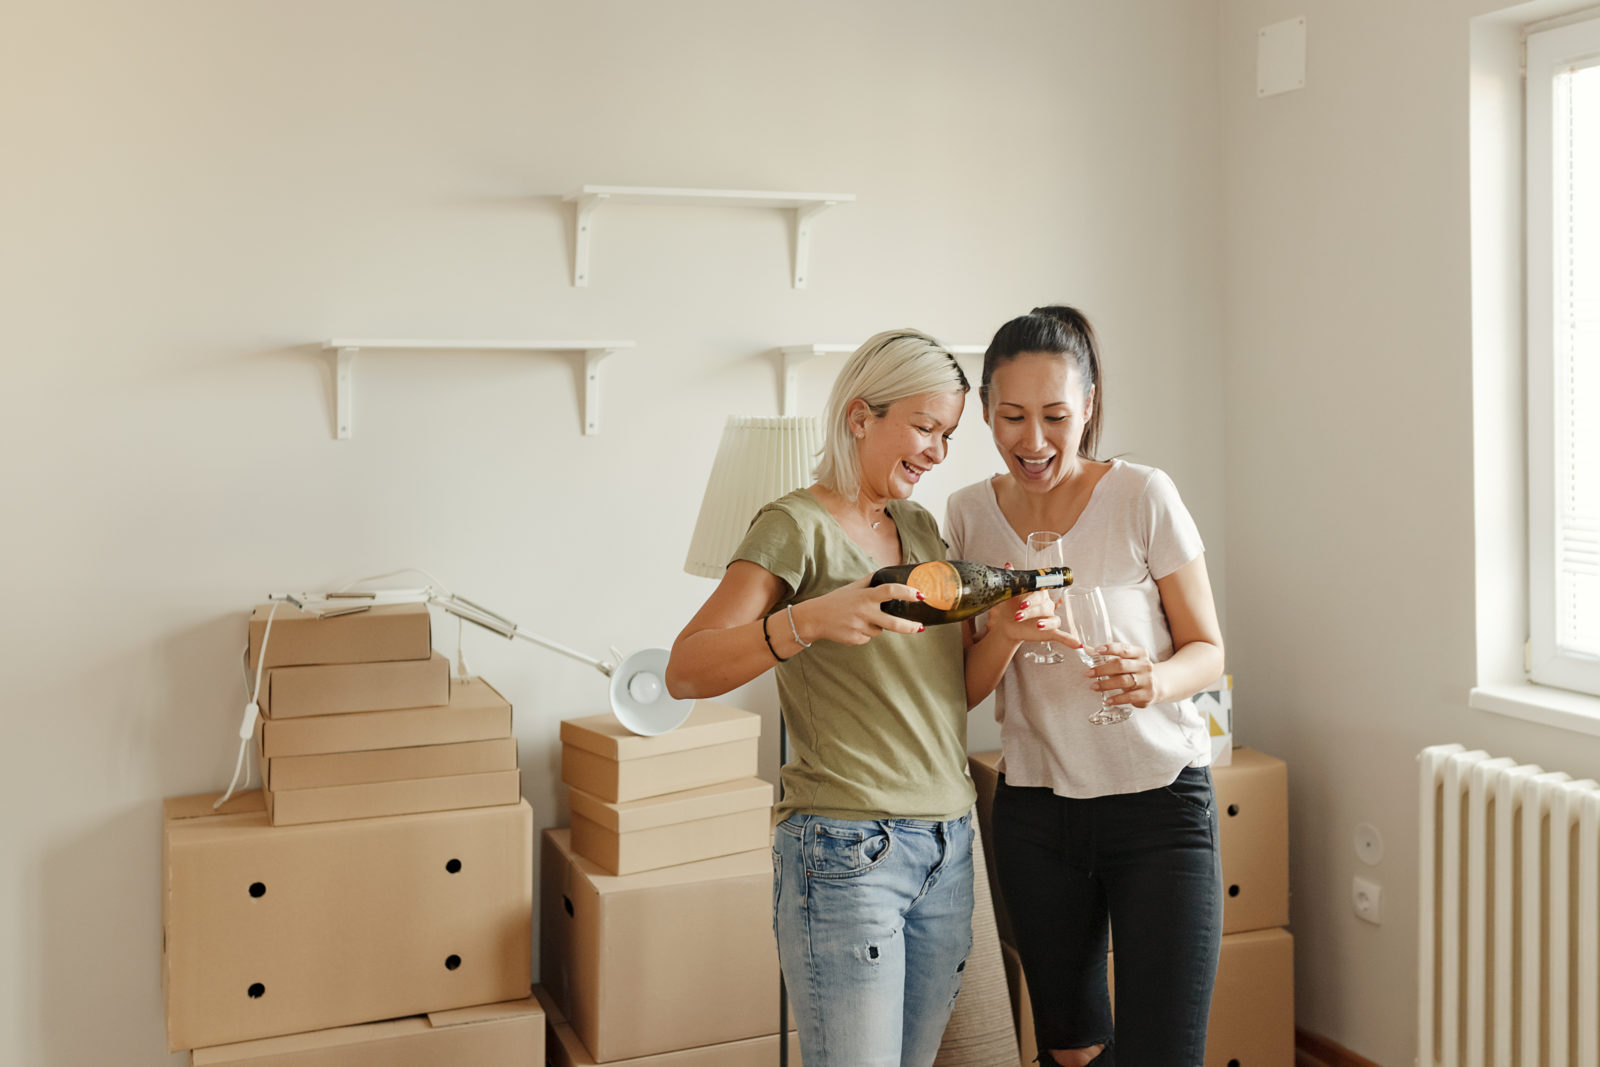 Happy Couple Celebrates Moving Into a New Apartment